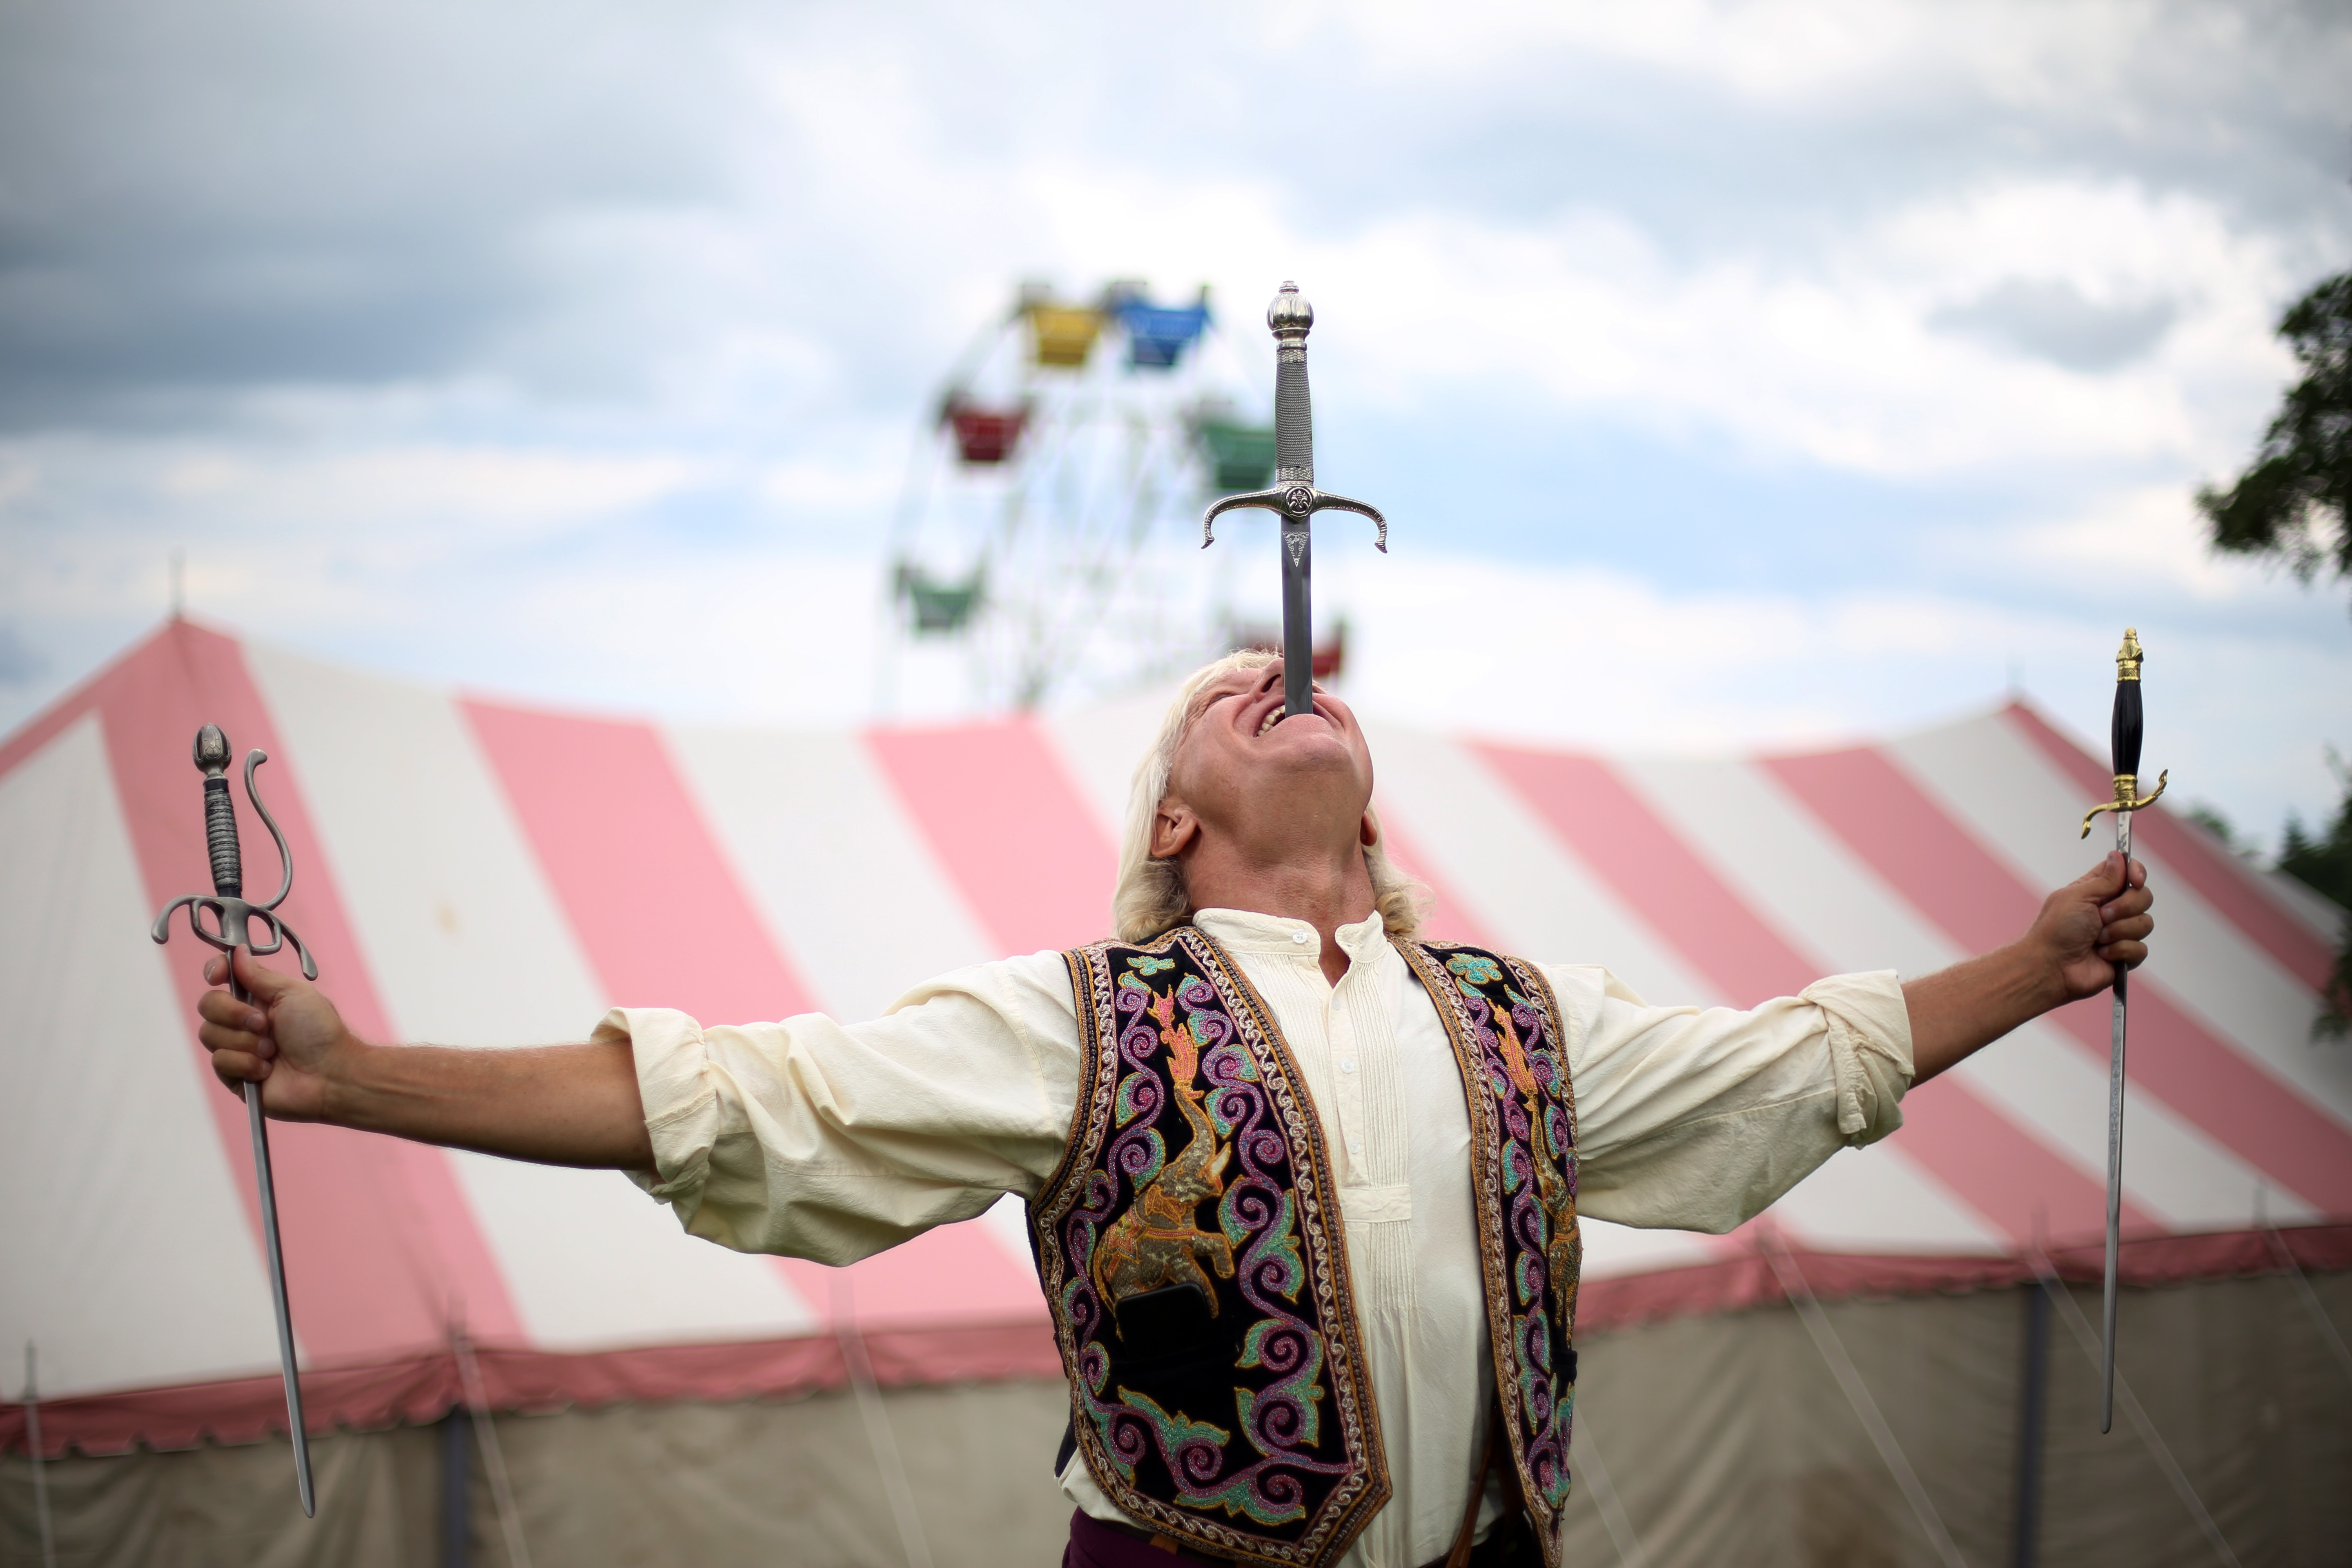 Sword-Swallower-at-a-Carnival-Dan-Meyer-2017-color-outstretched.jpg